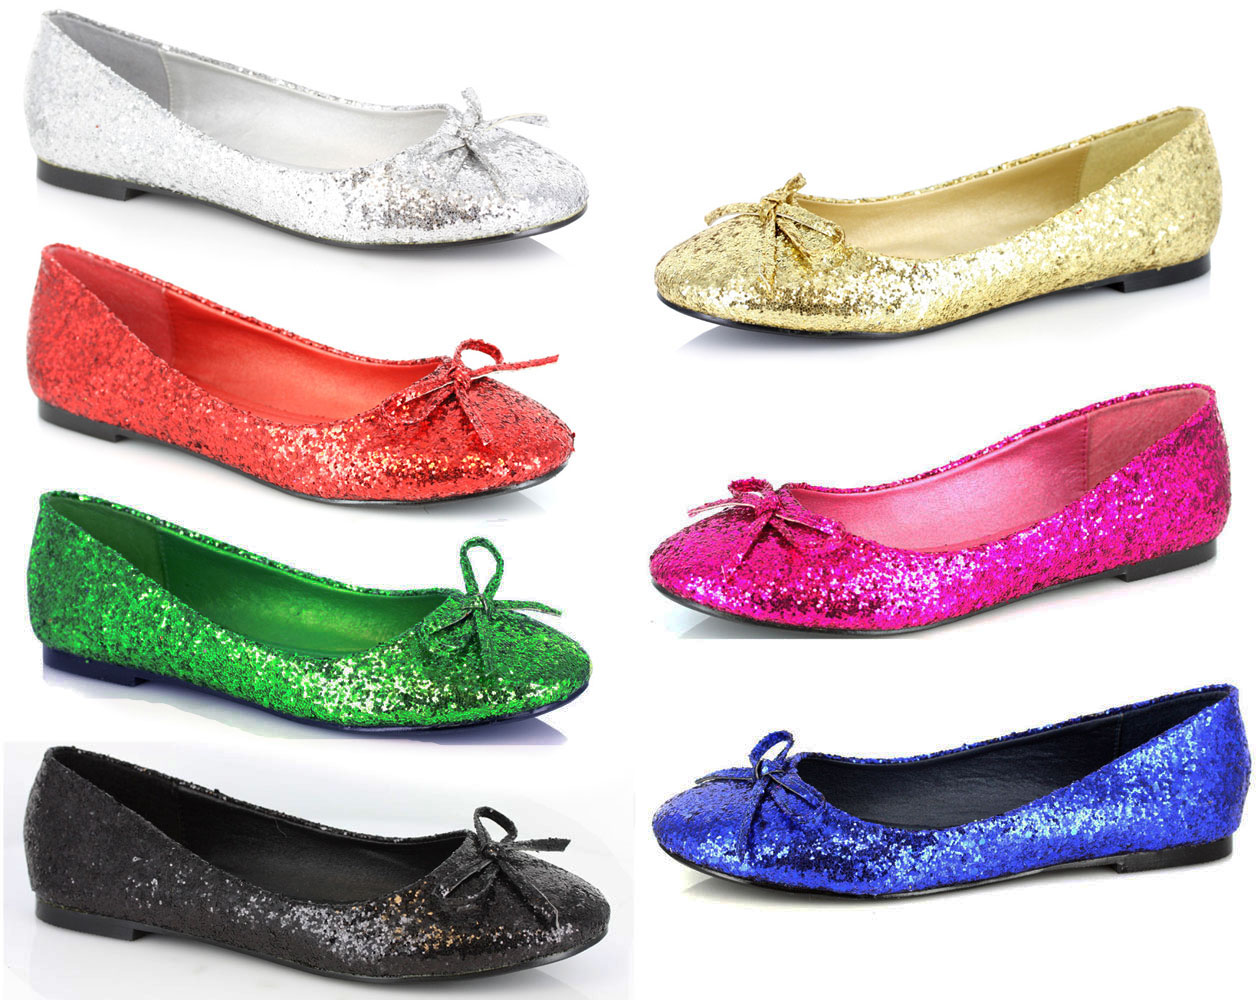 New shopping deals are here! Shop more and find amazing deals on sparkle ballet flats from several brands all in one place.